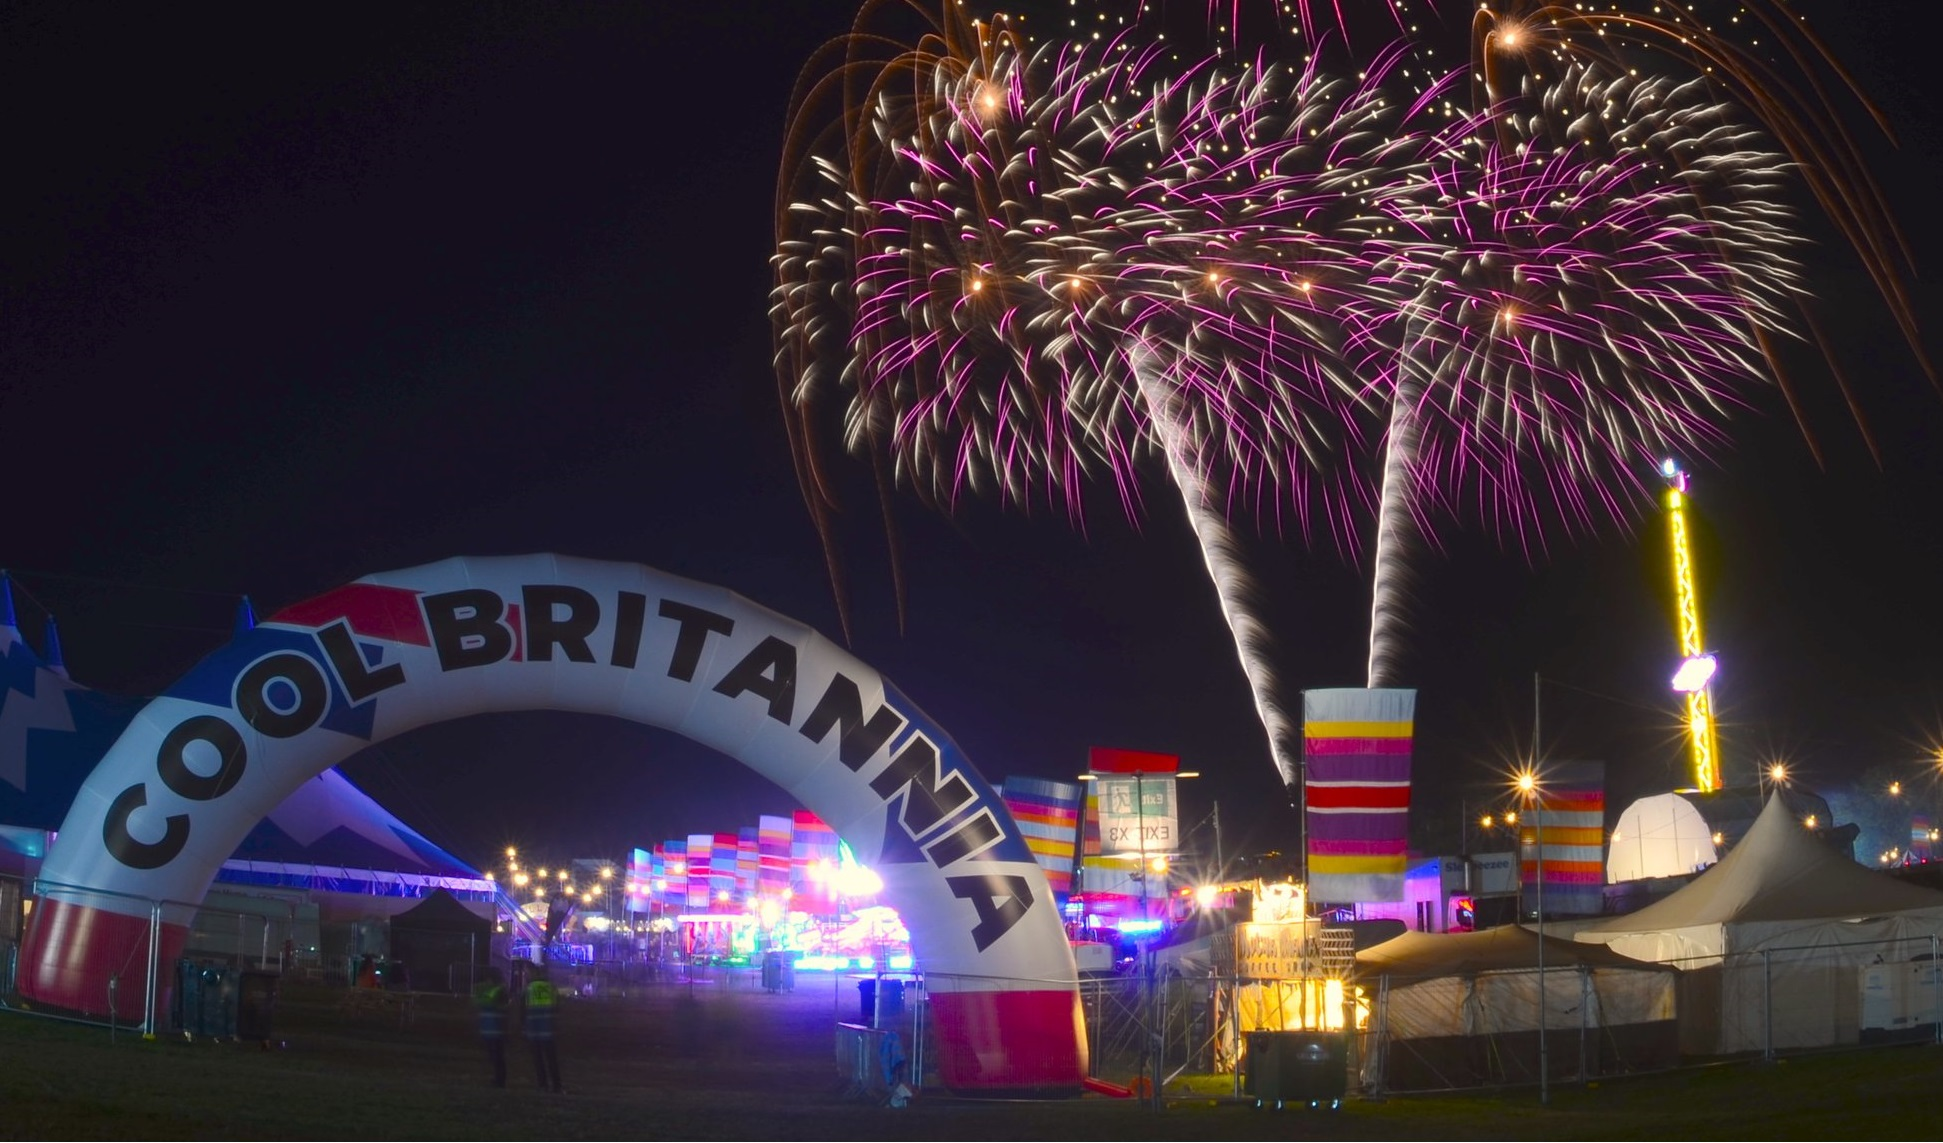 fireworks - Make sure you stay to the very end of COOL BRITANNIA 2019 as there's sure to be an amazing display. A fantastic firework finale will light up the sky as the festival draws to an end on Sunday.